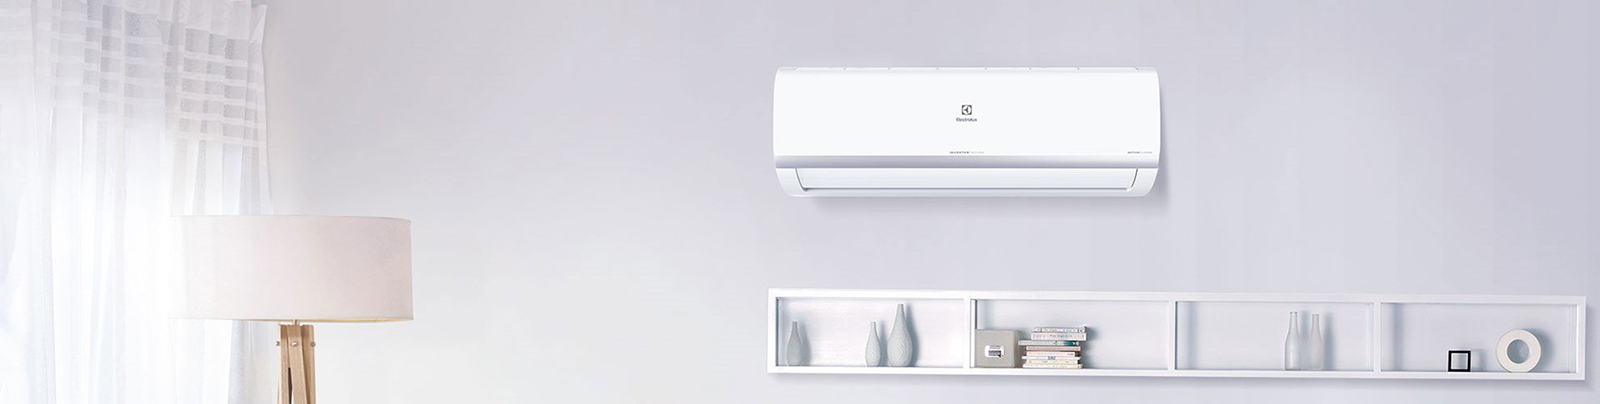 Ducted Air Conditioners vs Split System From Reef Air